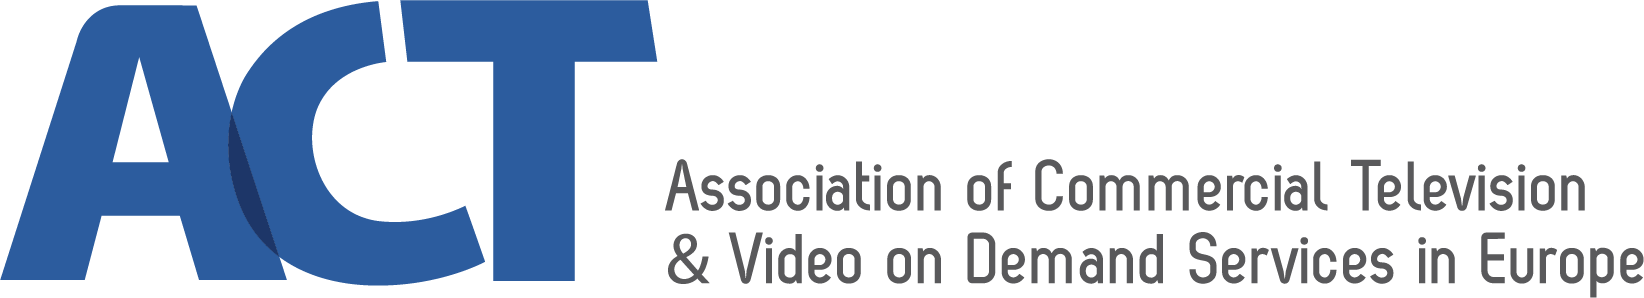 Association of Commercial Televesion in Europe